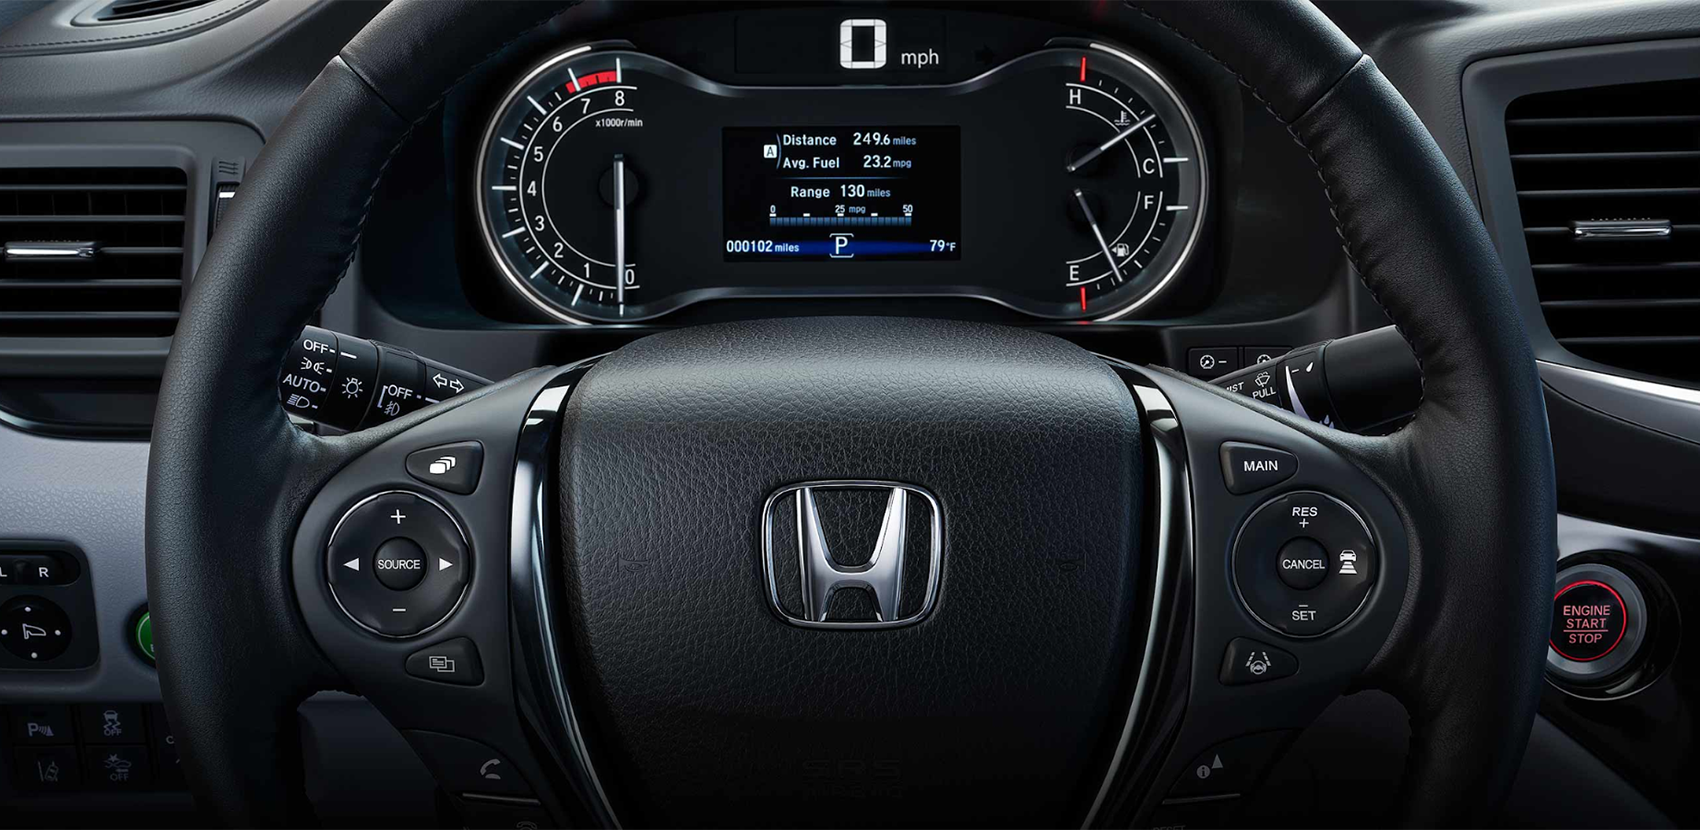 2019 Honda Ridgeline Dashboard Display